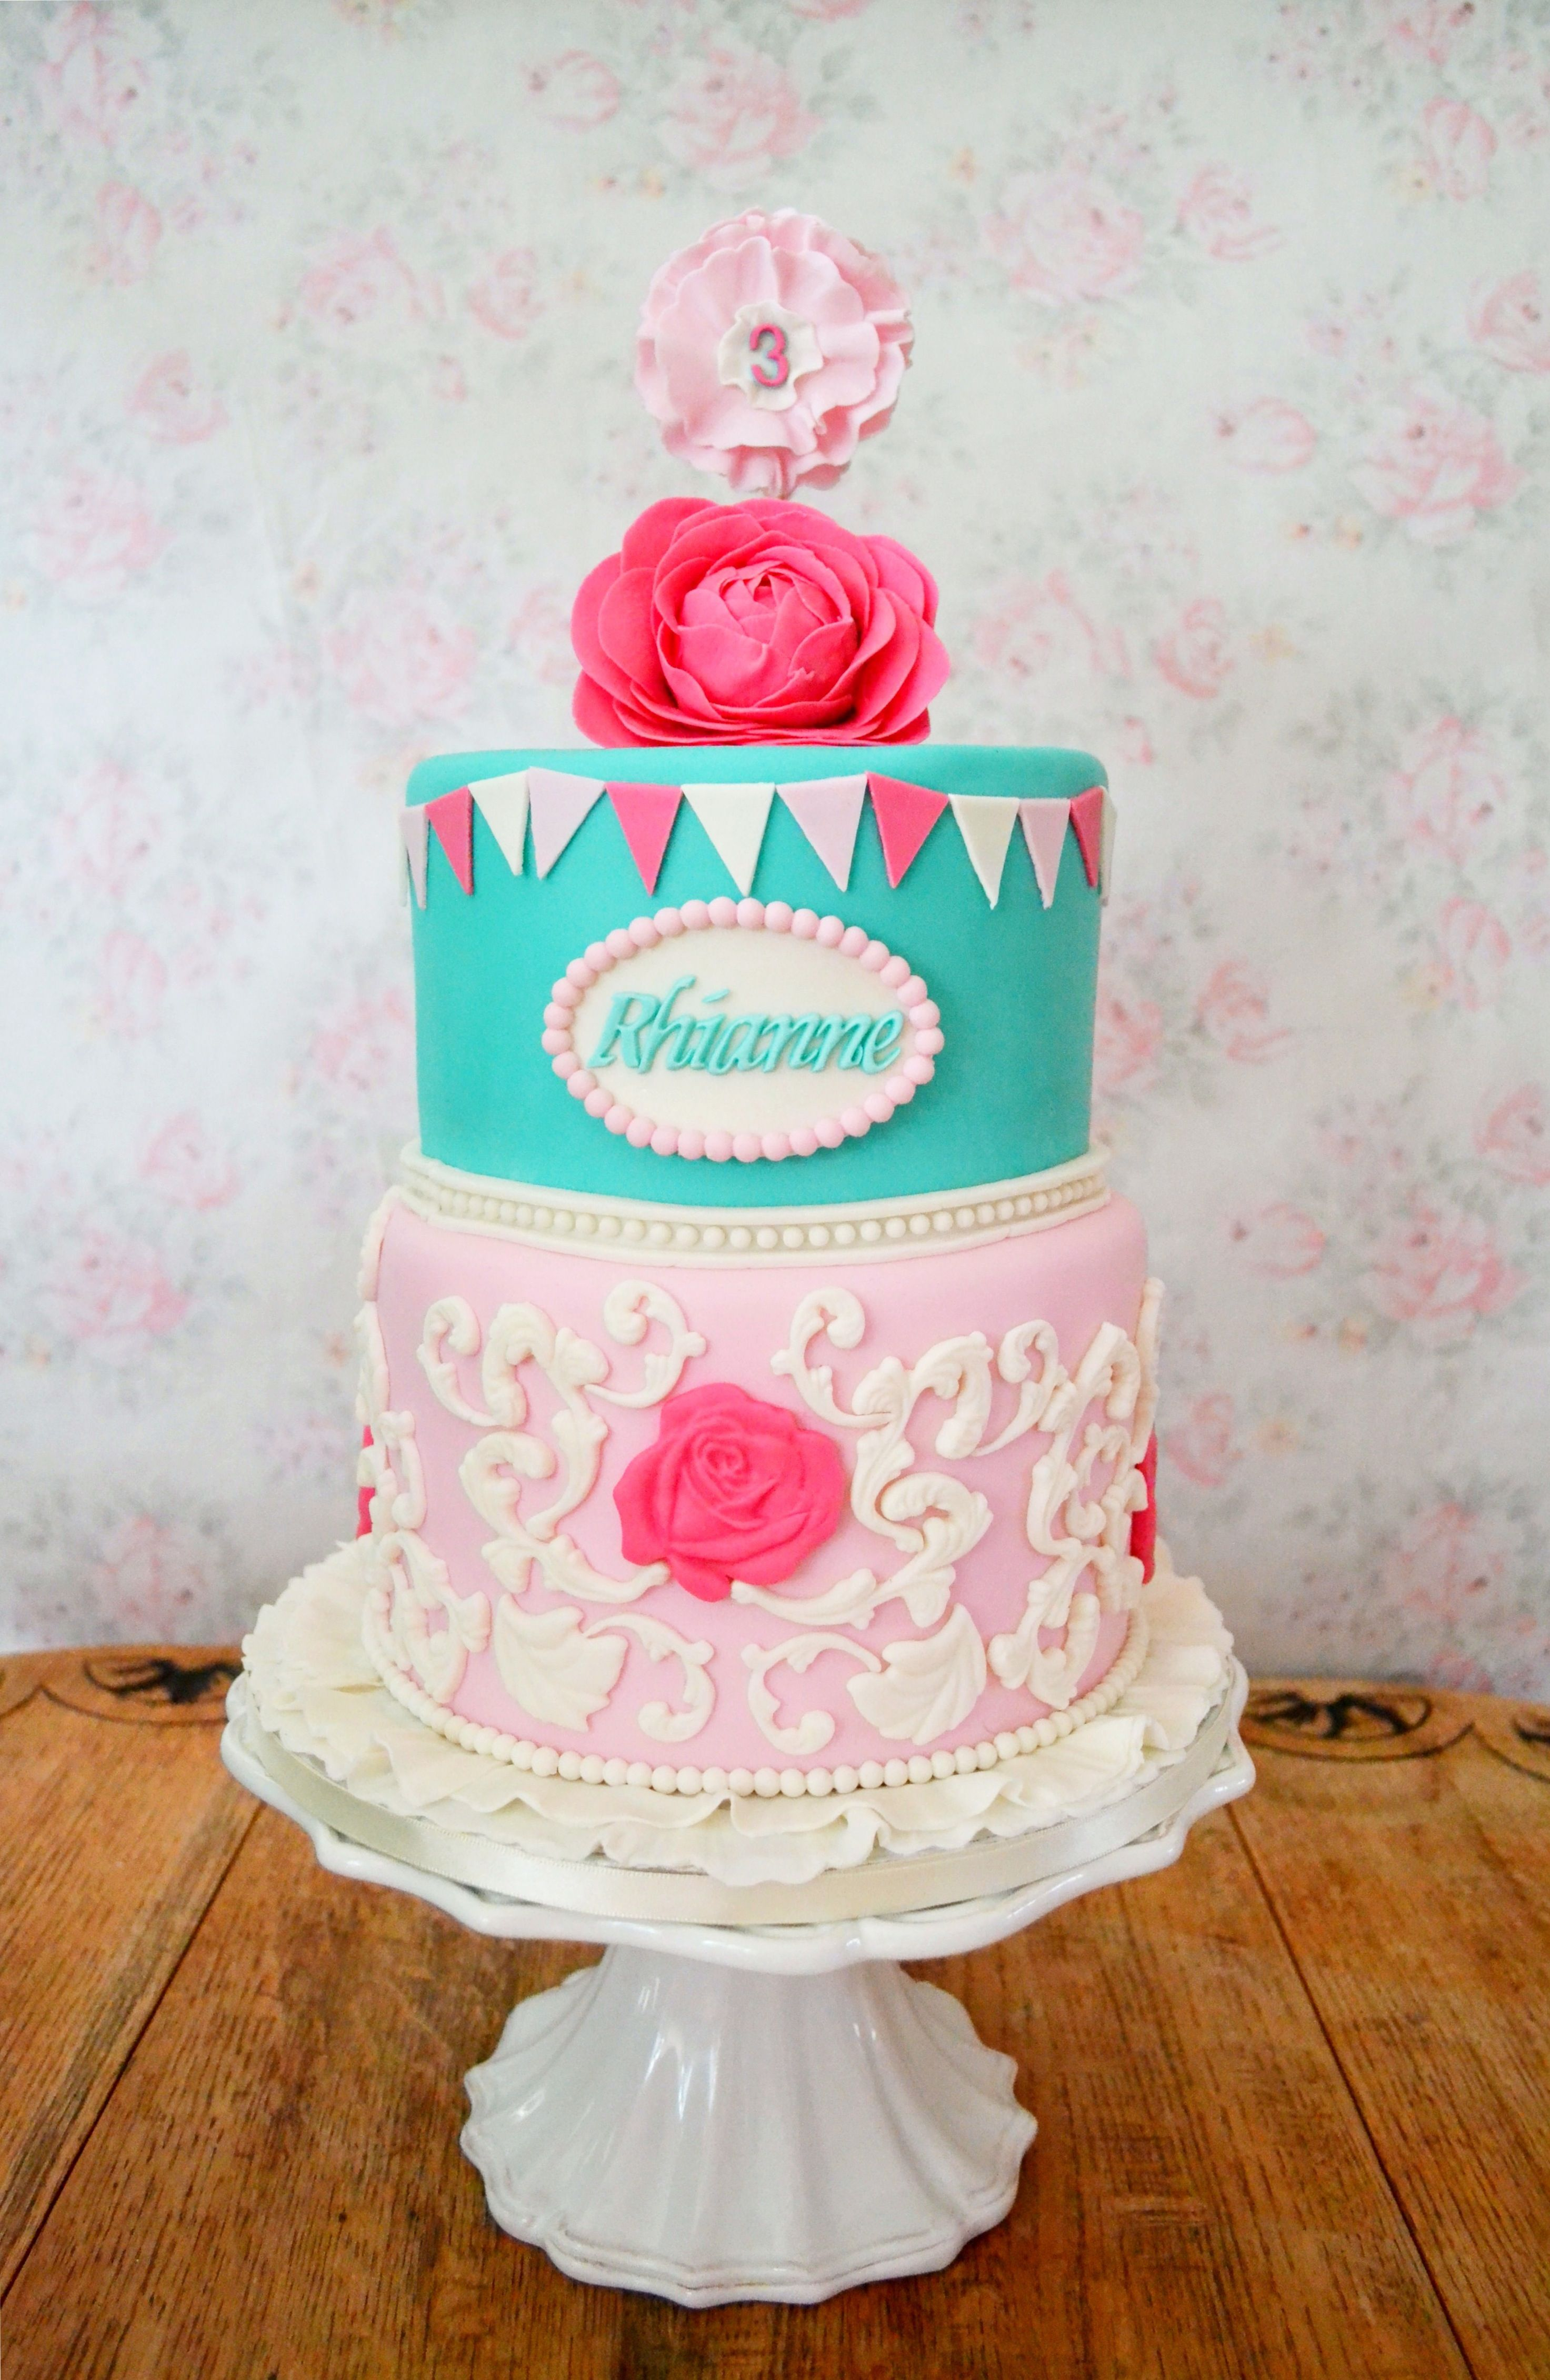 A Girly Girl Shabby Chic Inspired Birthday Cake Vintage Love At Its Best Yumnumscouk